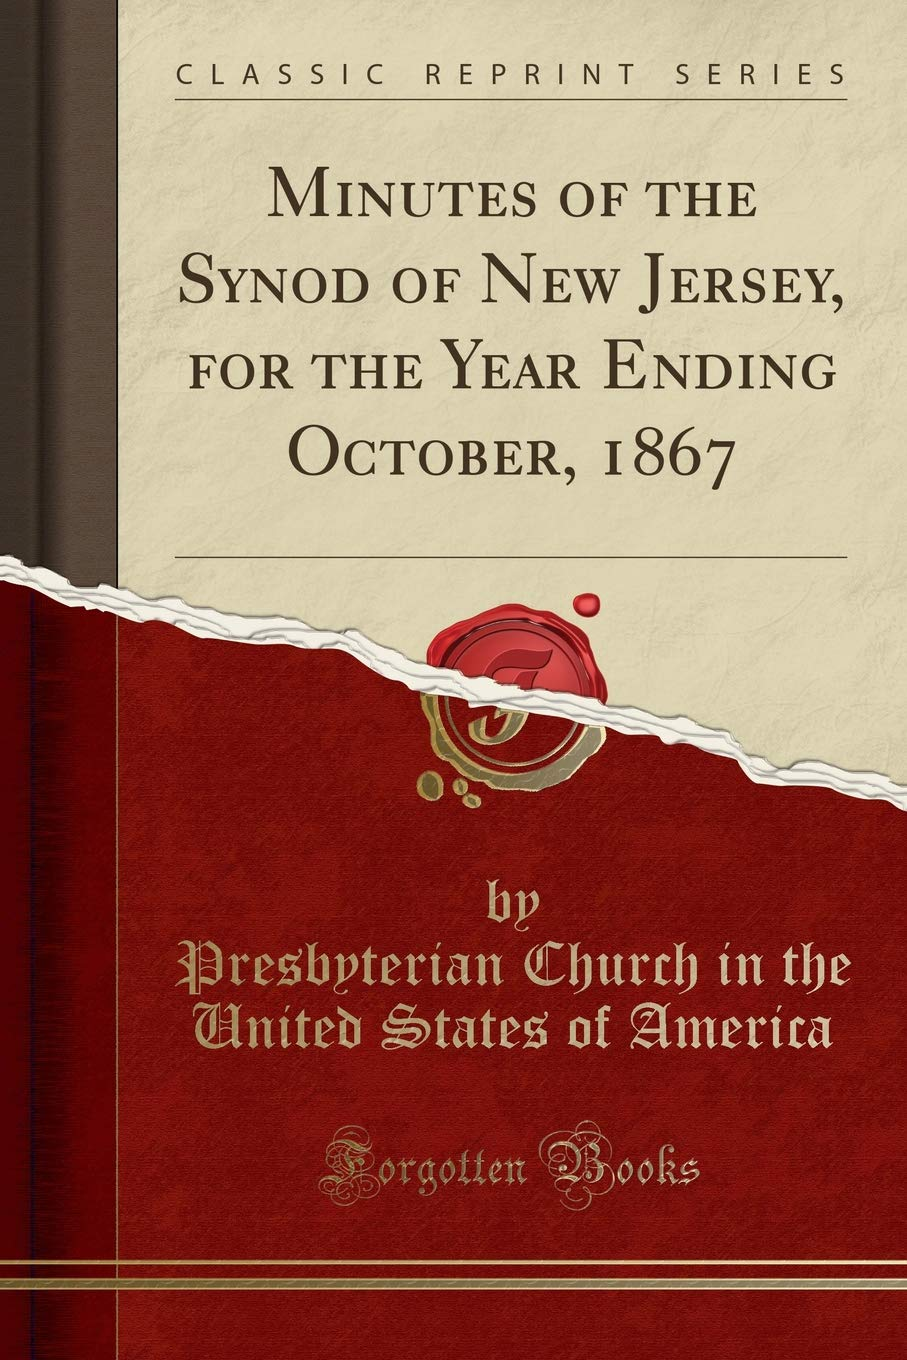 Minutes of the Synod of New Jersey, for the Year Ending October, 1867 (Classic Reprint) ebook